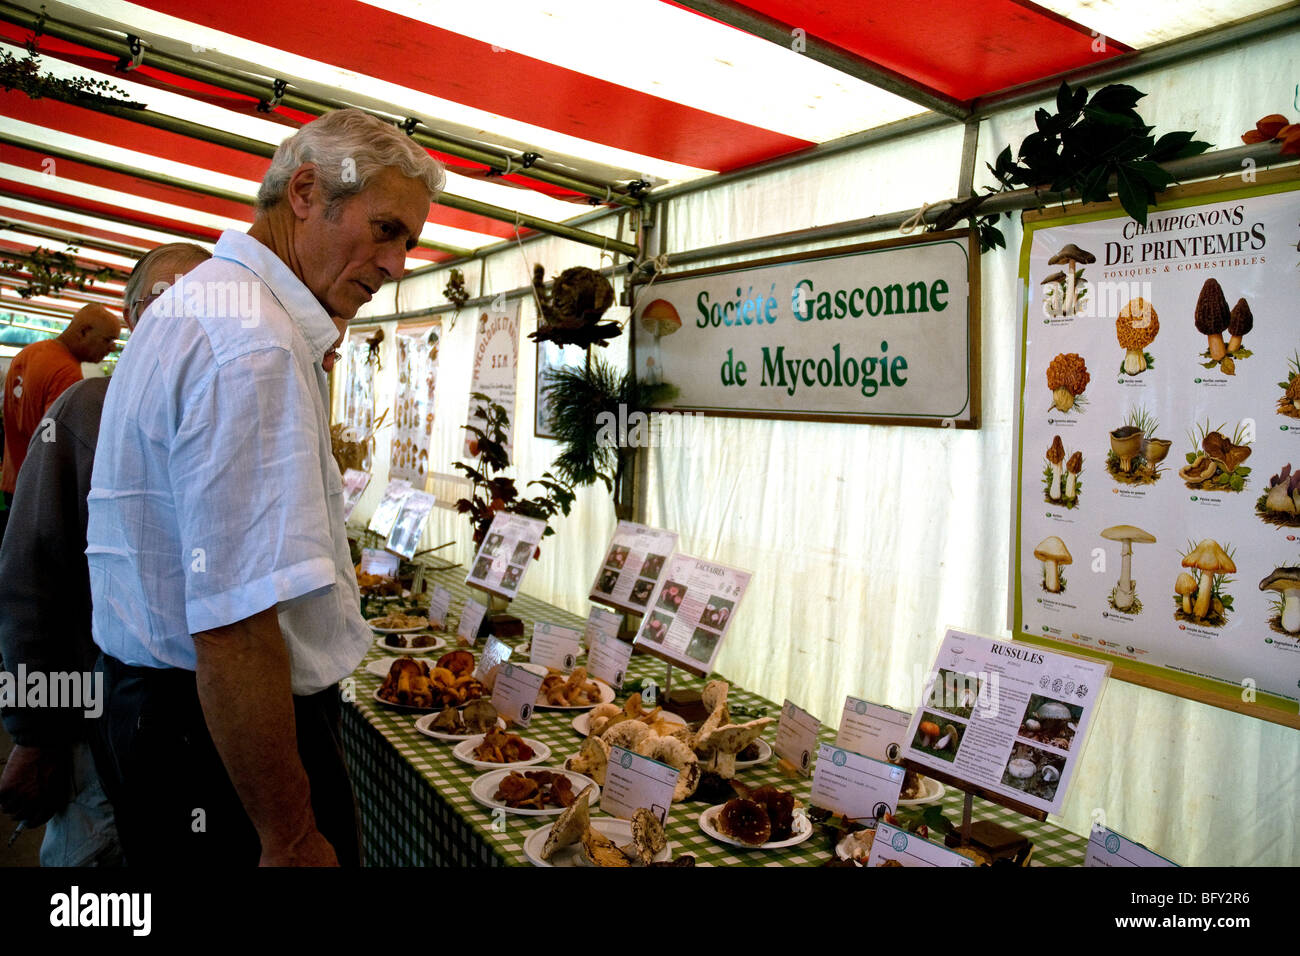 Mycology, or mushroom, enthusiasts at a stand displaying many varieties at a Gascon agricultural fair in Auch - Stock Image